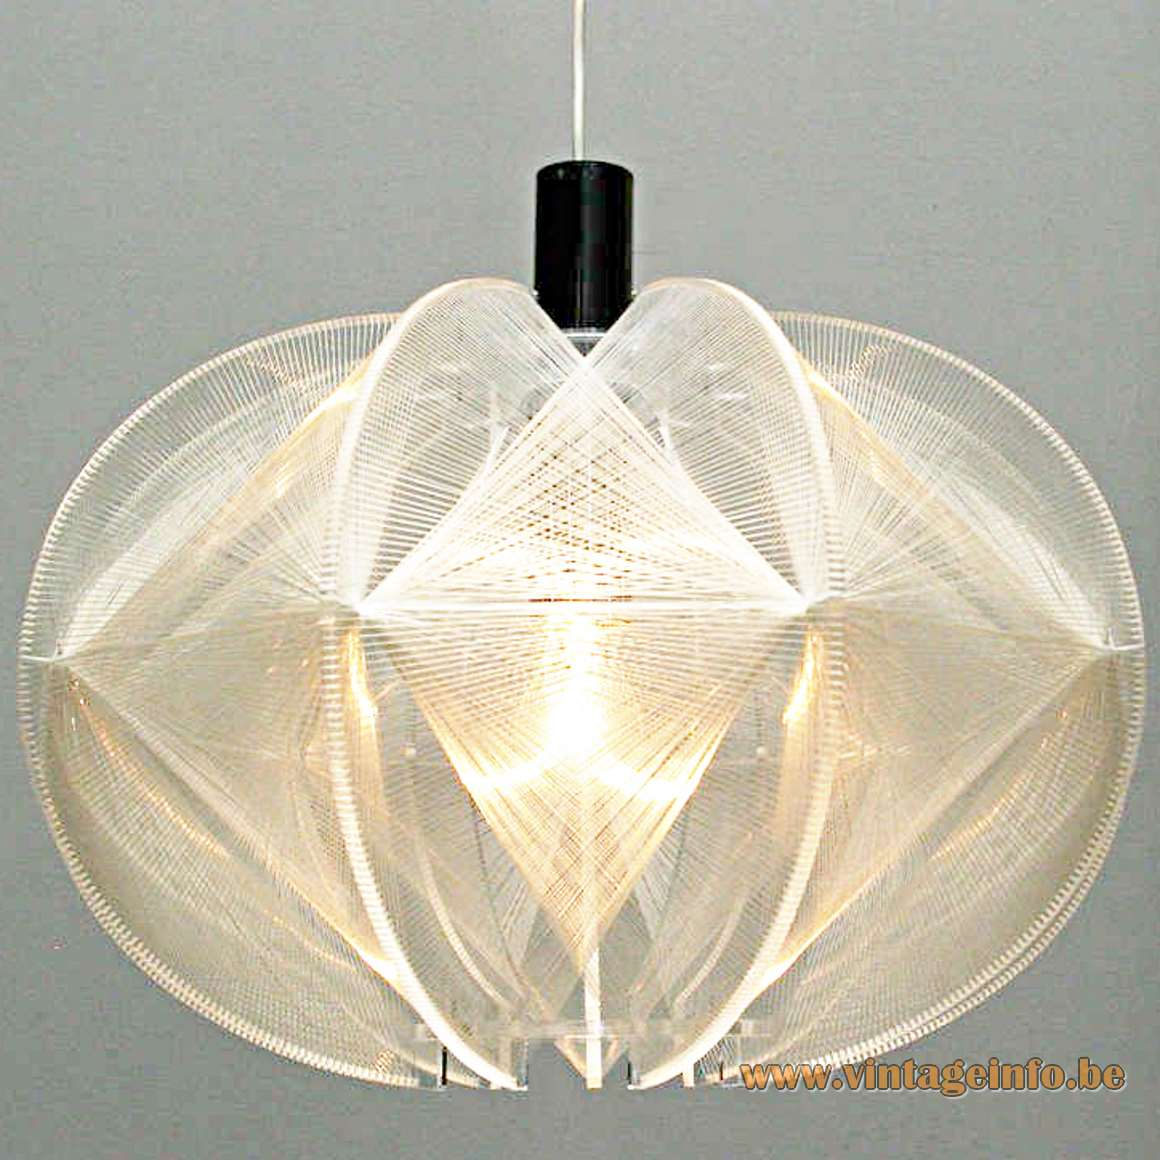 Paul Secon nylon thread pendant lamp plastic wire 1970s Sompex Germany acrylic geometric plexiglass MCM